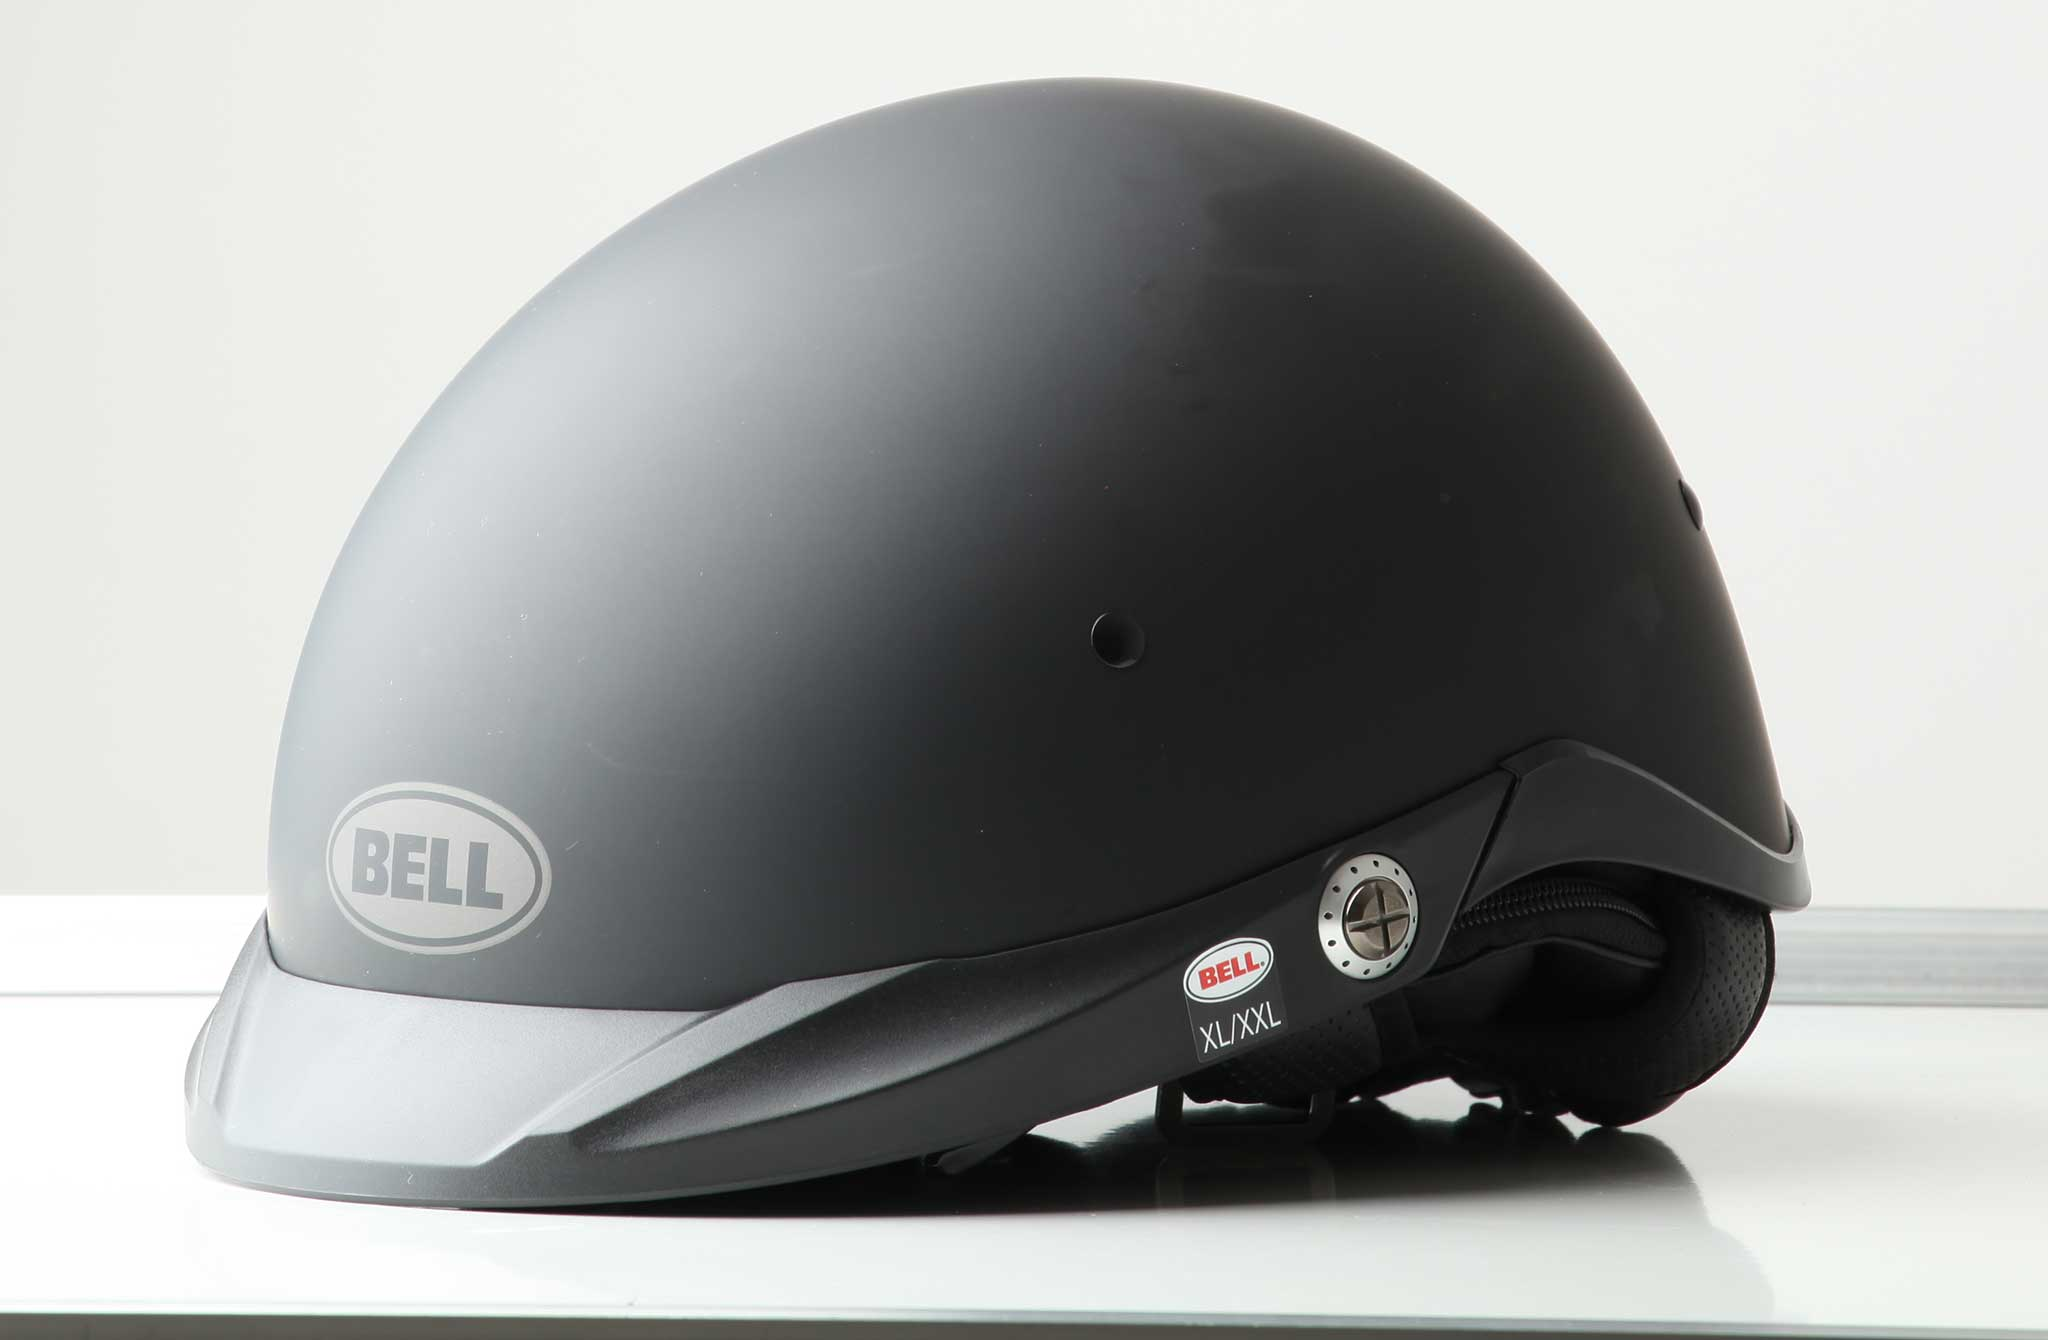 Bell Motorcycle Helmets Protecting You Since 1954